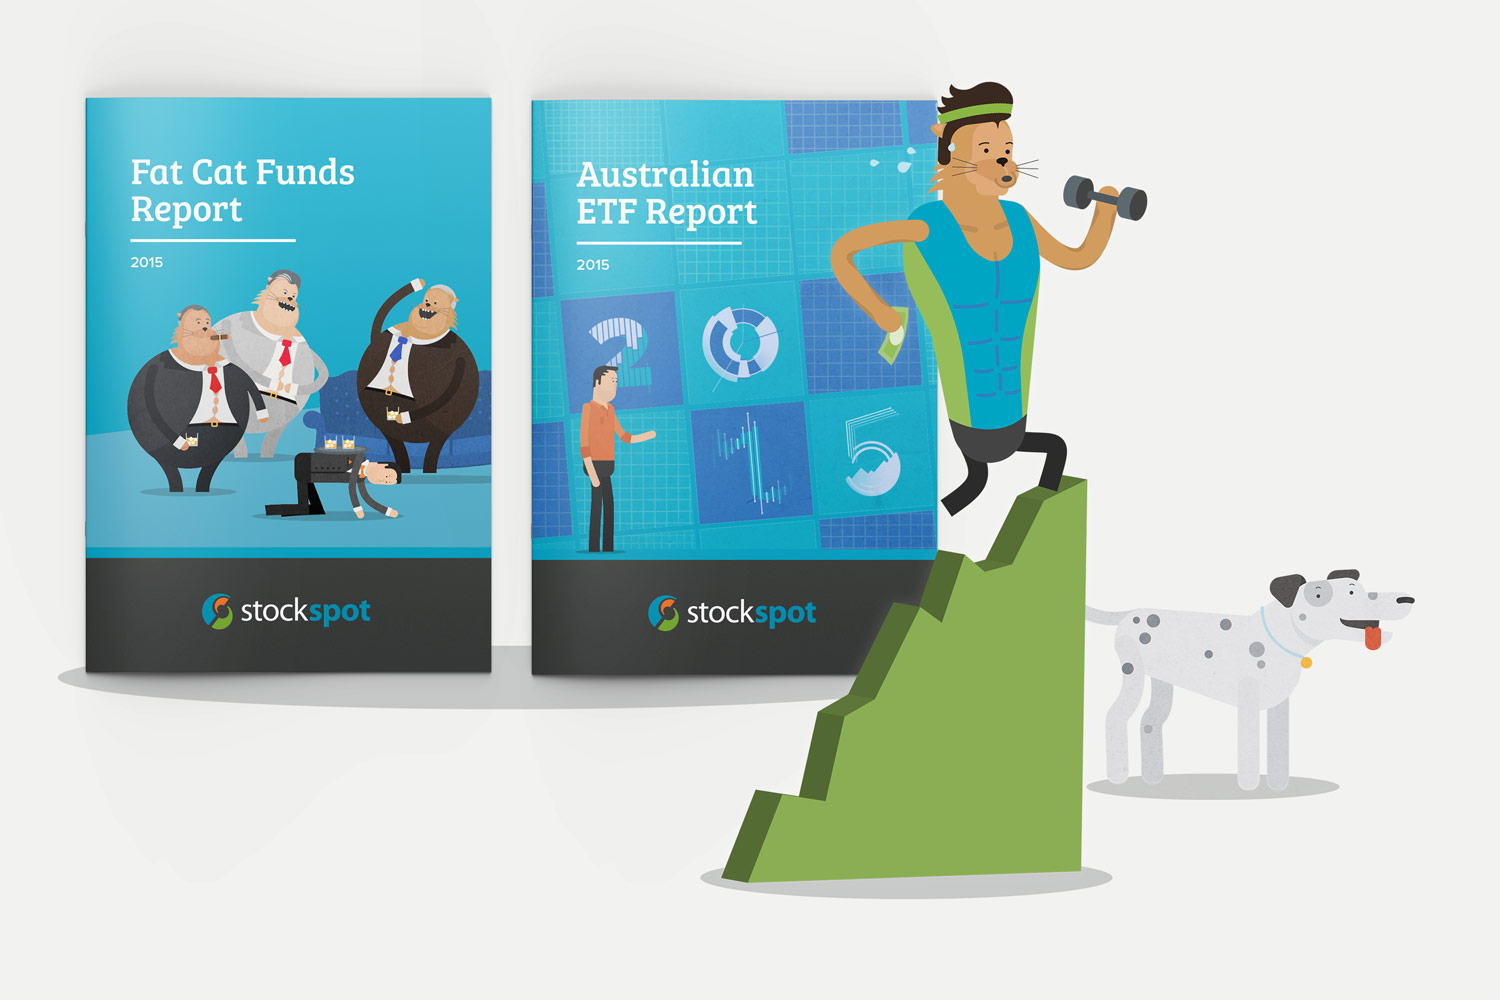 Report Design and Illustration for a financial services company by Theysaurus